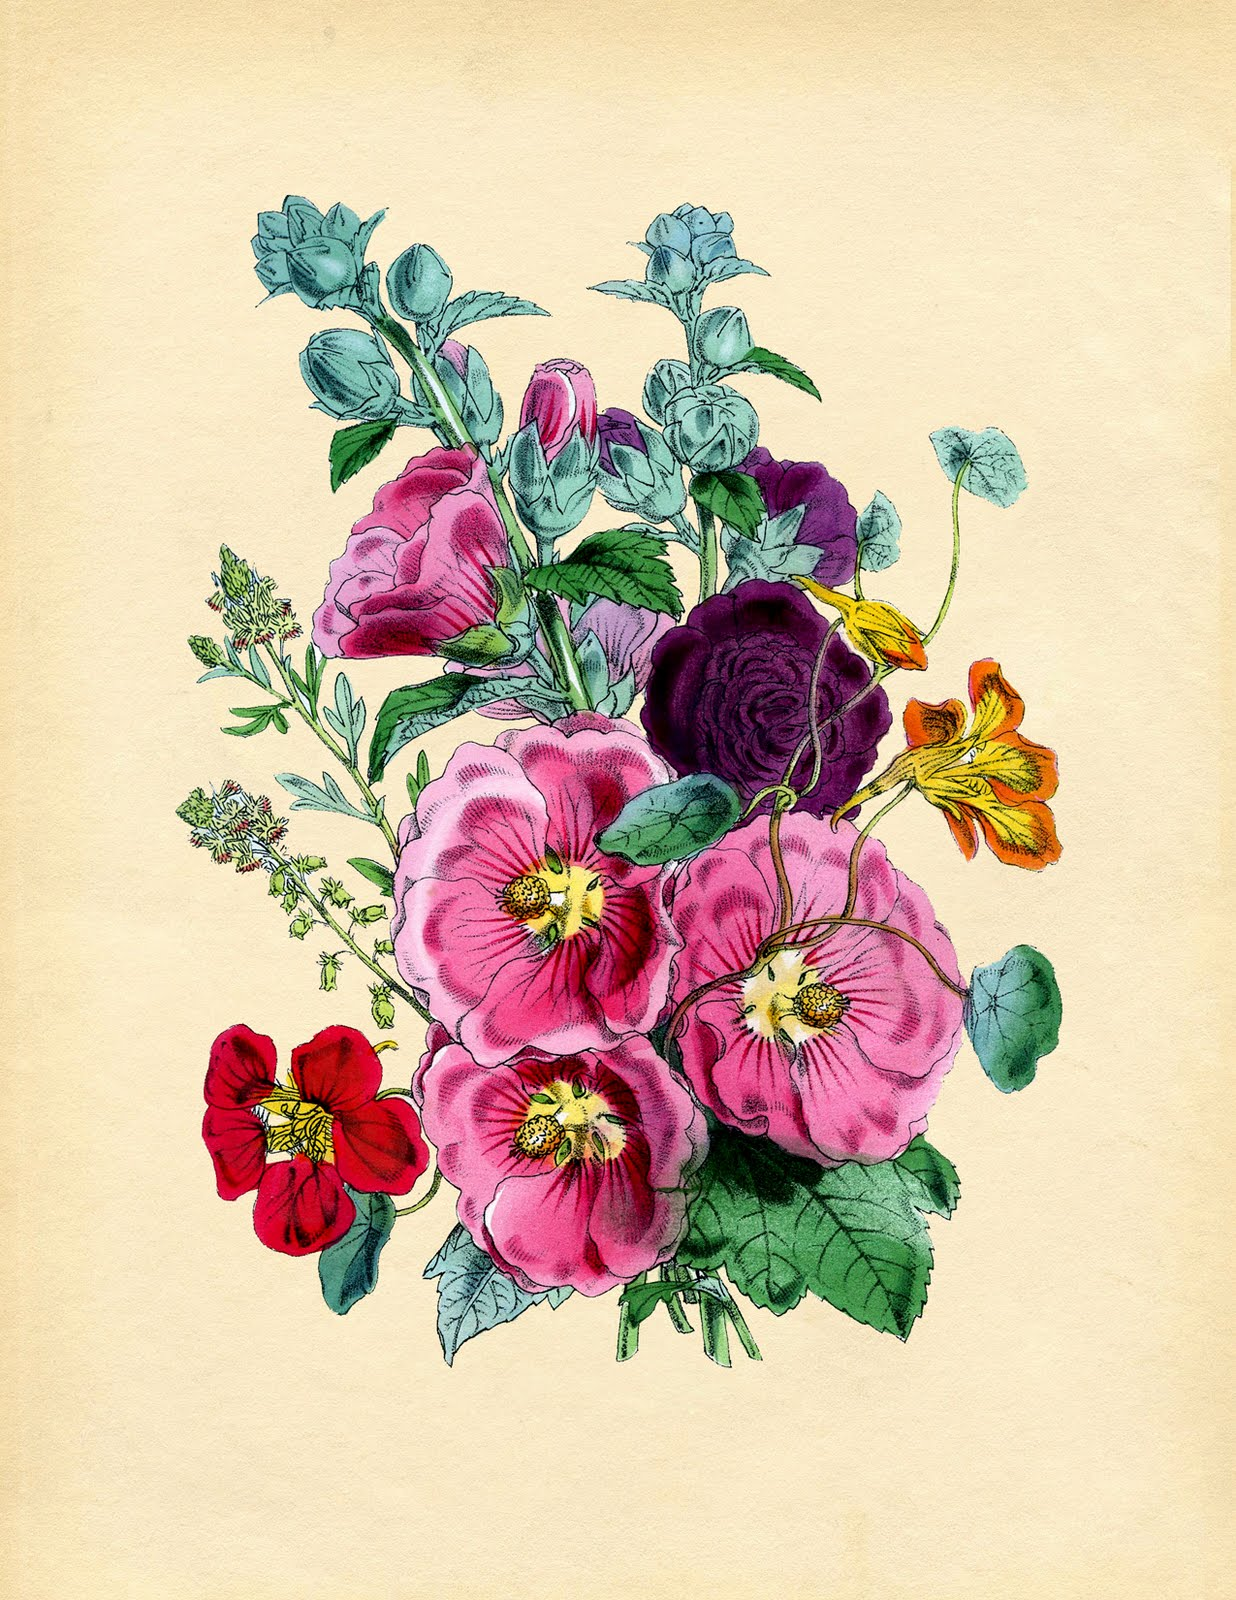 Wild image with printable of flowers